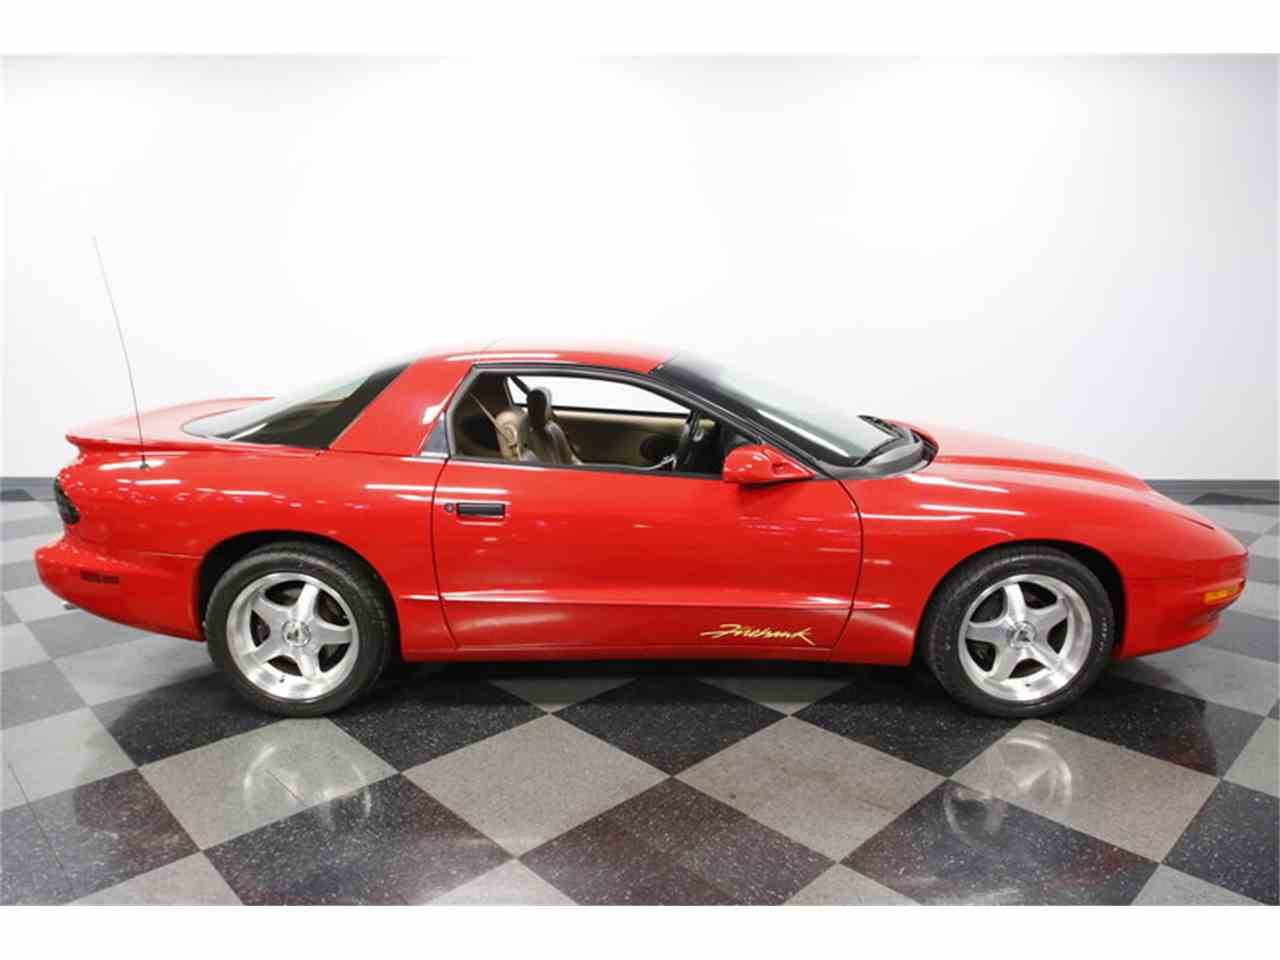 Large Picture of '93 Pontiac Firebird - $15,995.00 - MZJM